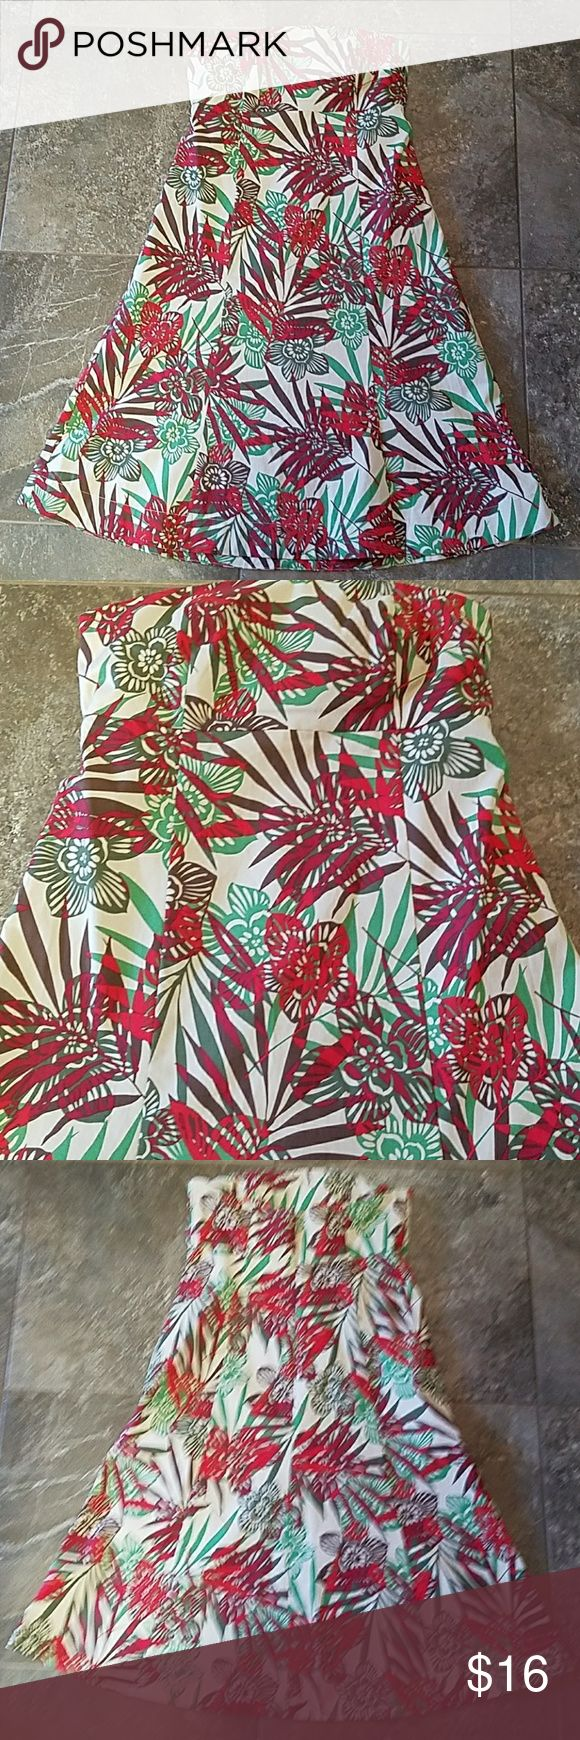 """Tropical Gap Stretch Sundress 97% cotton 3% spandex machine wash cold, measures 15"""" across at top and 30 1/2 """" back Center length GAP Dresses Strapless"""